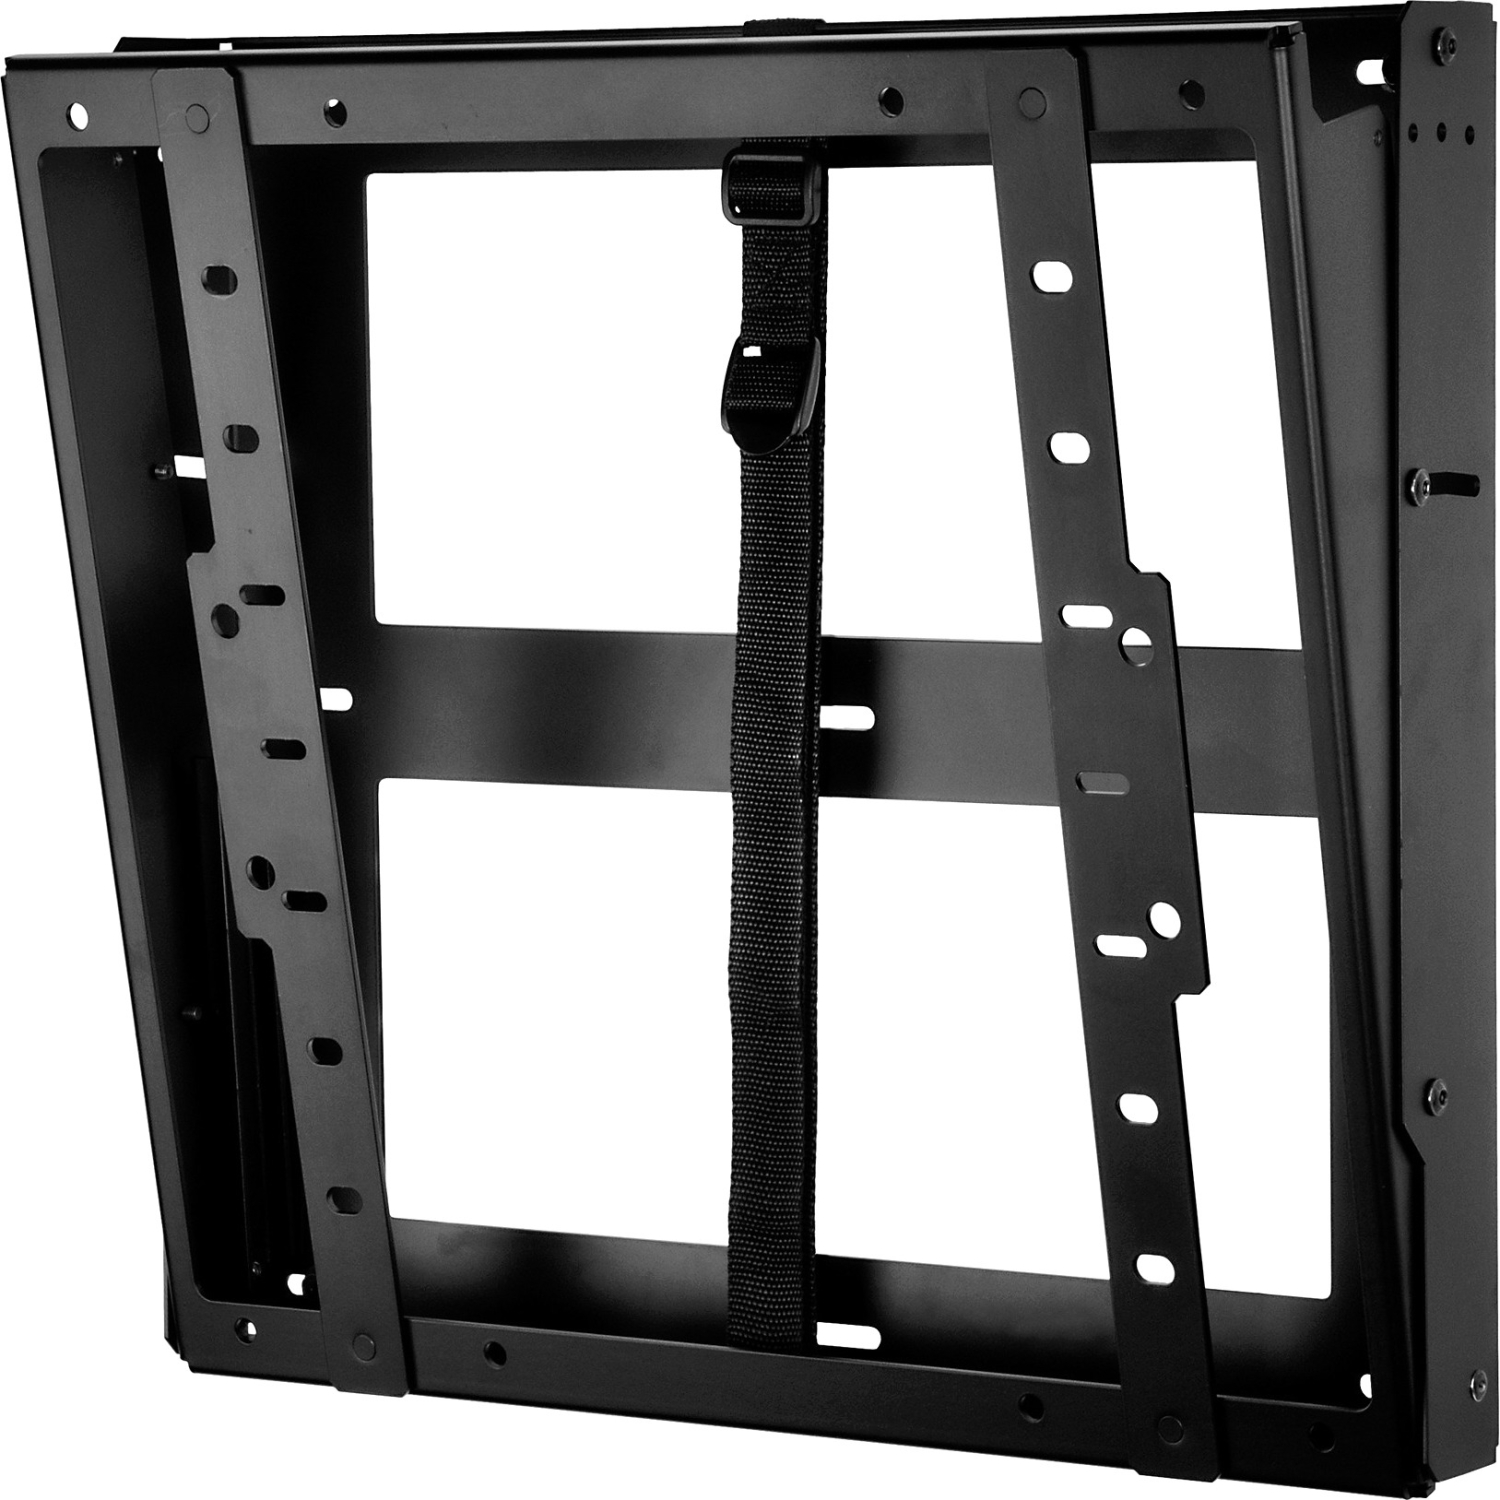 "Peerless DST660 Tilt Wall Mount with Media Device Storage For 40"" to 60"" Flat... by Peerless"